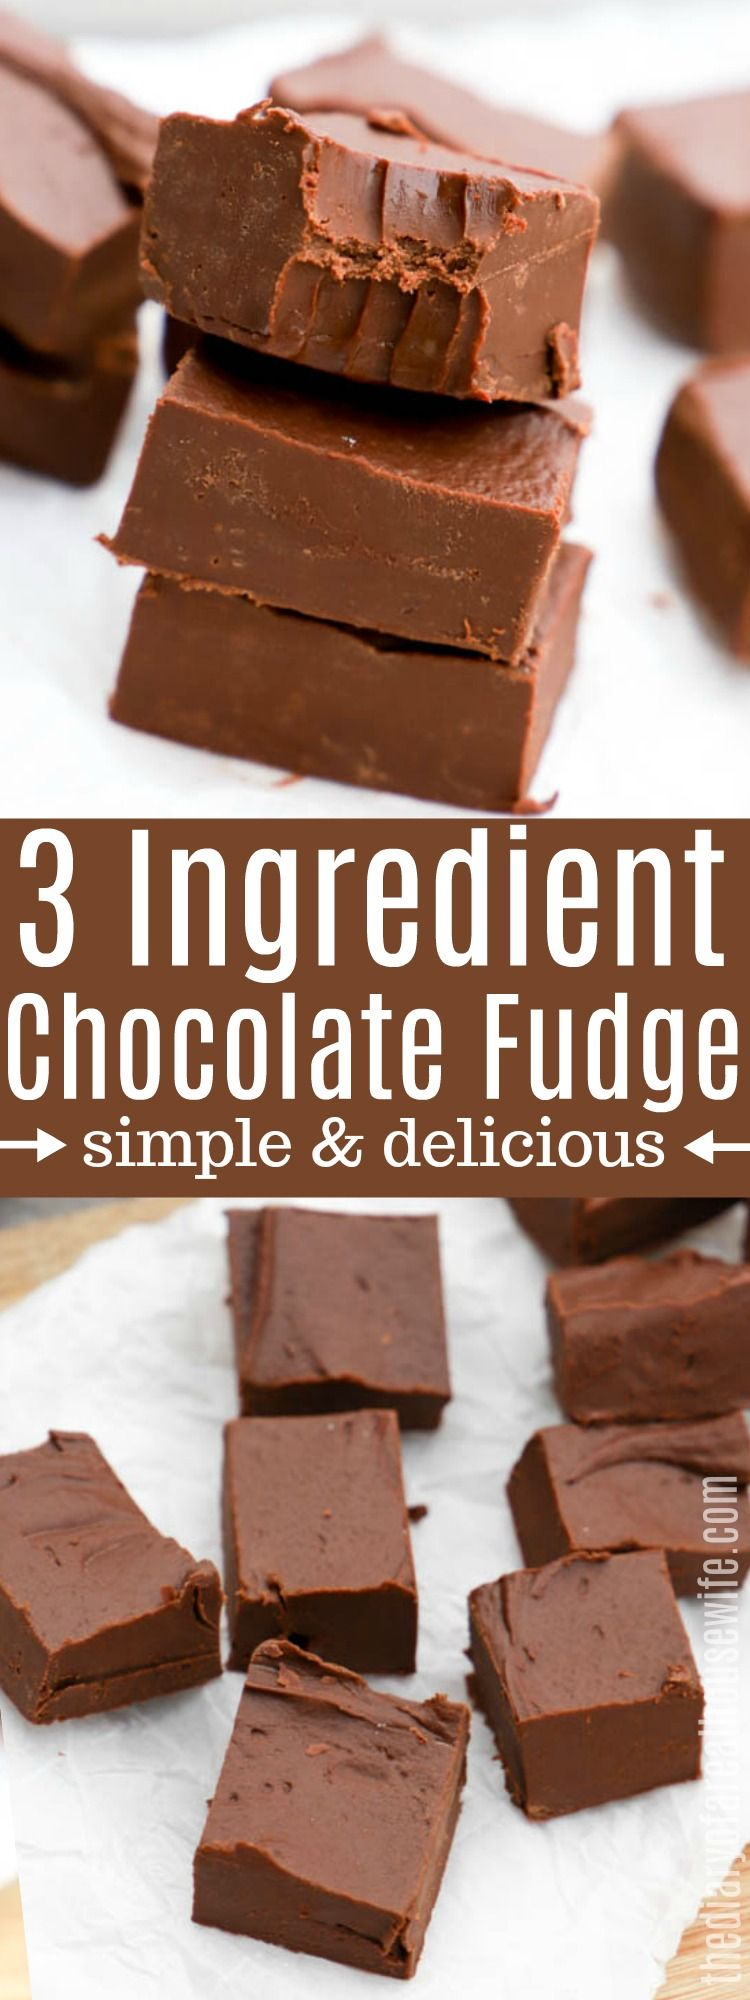 Easy Chocolate Fudge • The Diary of a Real Housewife